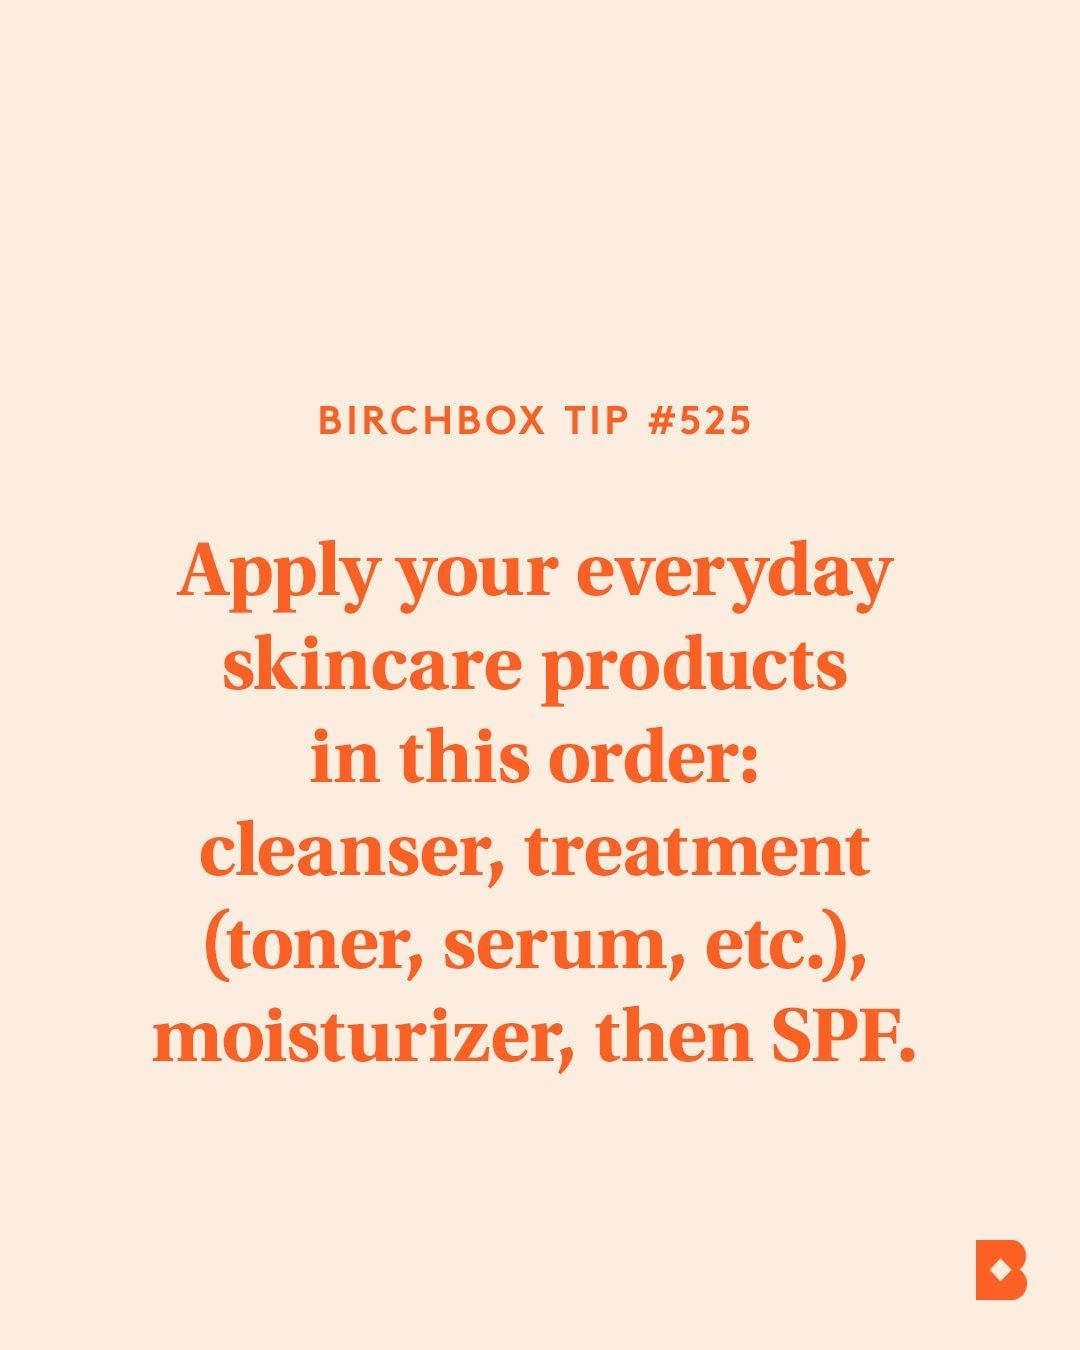 If you're ever unsure of what order to use your products in, start here. These are your #goodskincarefundamentals. This month we're talking about routines. We'll share our routines, what ingredients play well together, and we'll have some q&a sessions. Interested? Sound off below with your Qs or tips and stay tuned to our 'Routines' highlight - we'll save it all there!